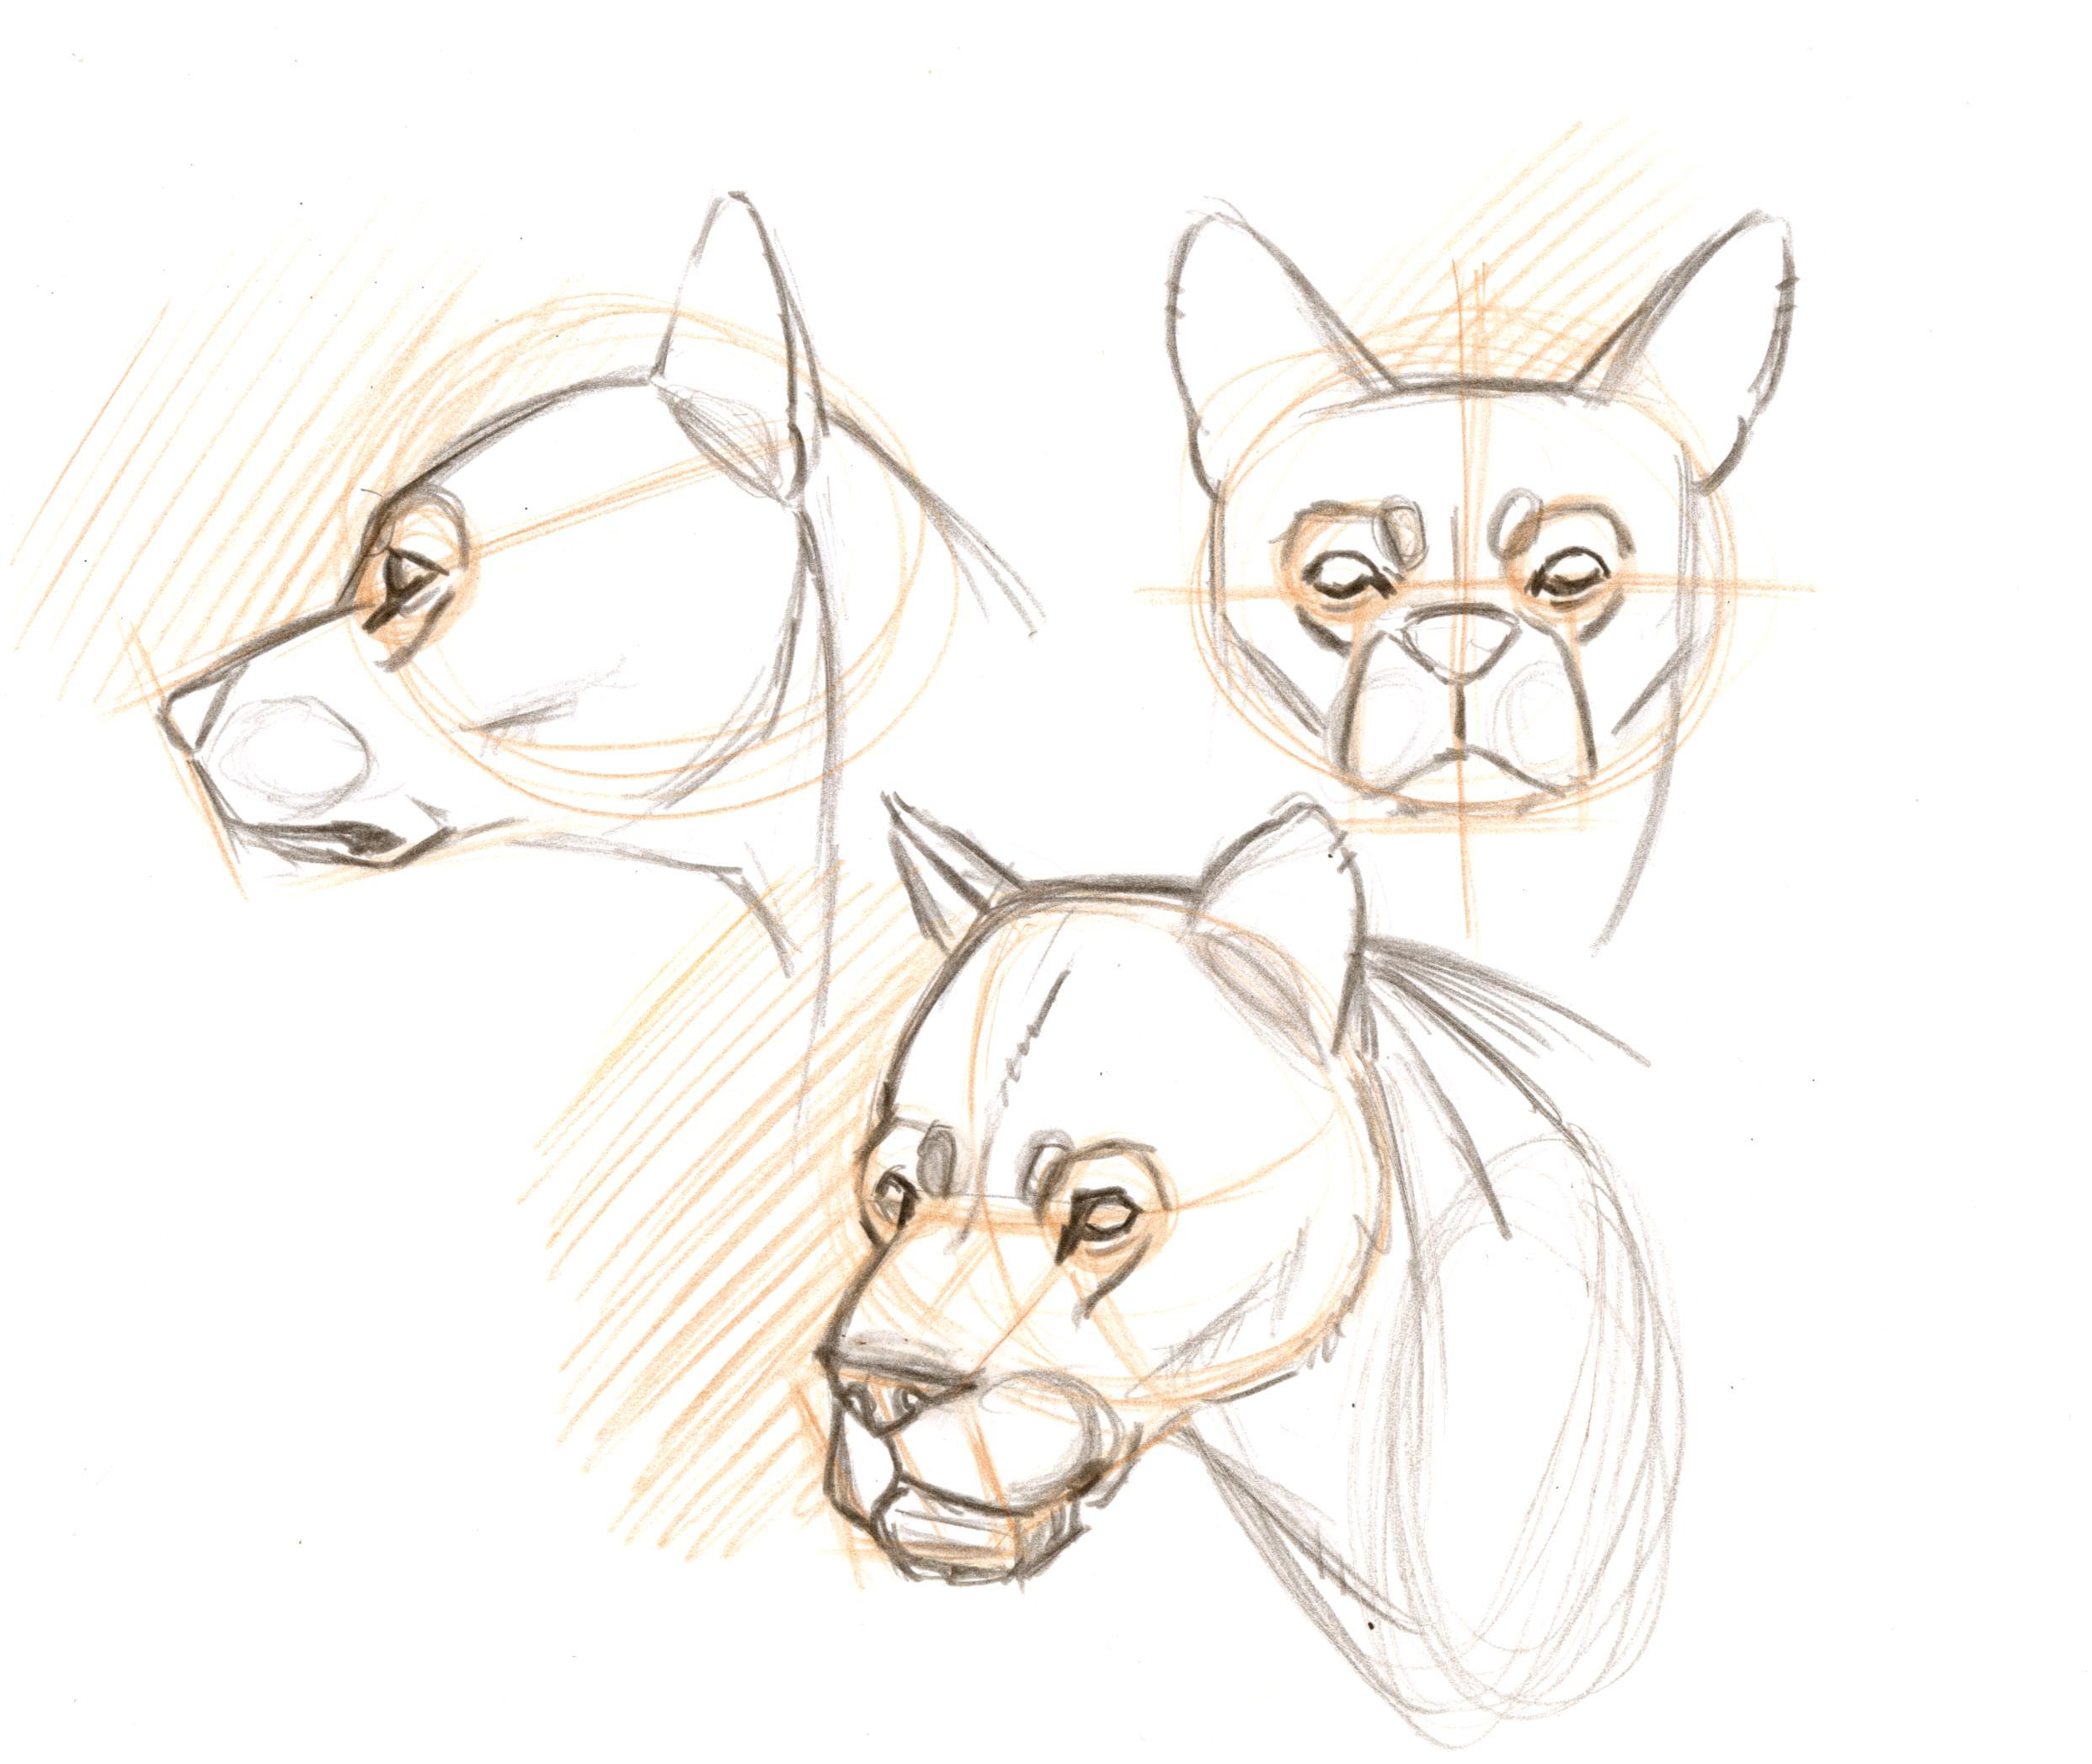 Uncategorized How To Draw Any Animal ow do you learn to draw animal heads from any angle practice drawing them from